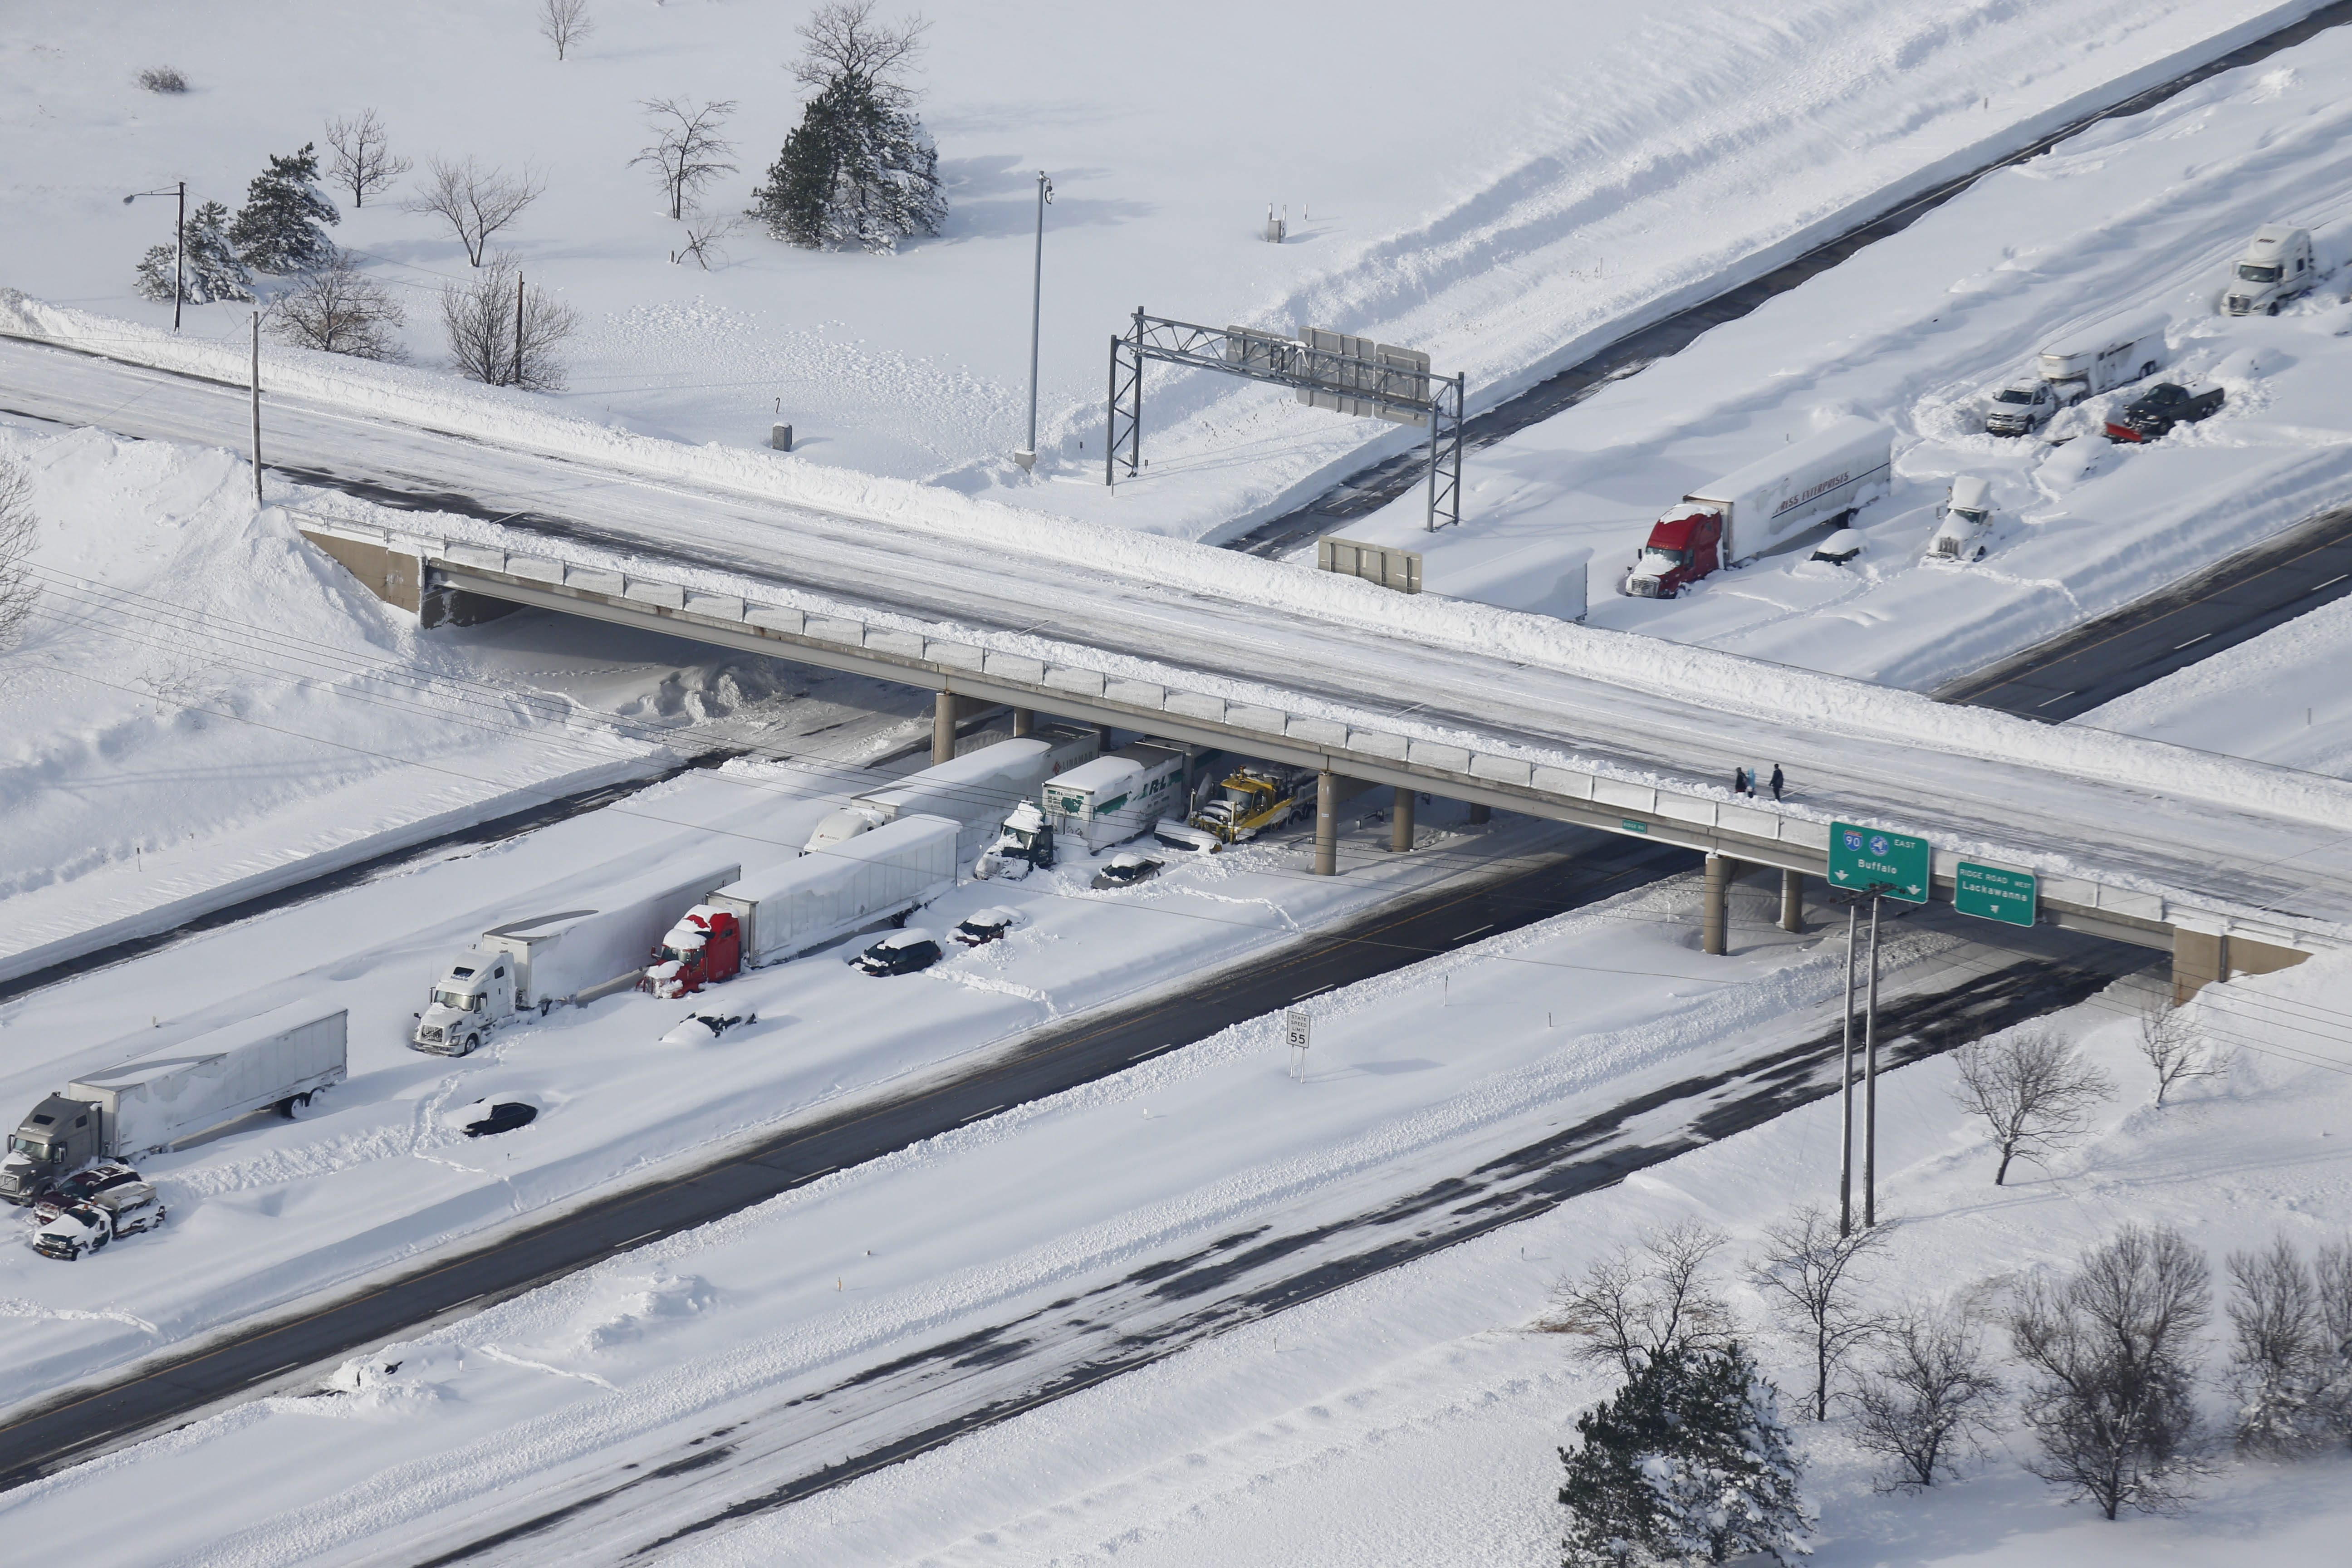 File photo from last year's November storms shows crews working to free motorists stranded on the New York State Thruway near Ridge Road.   (Derek Gee/Buffalo News)